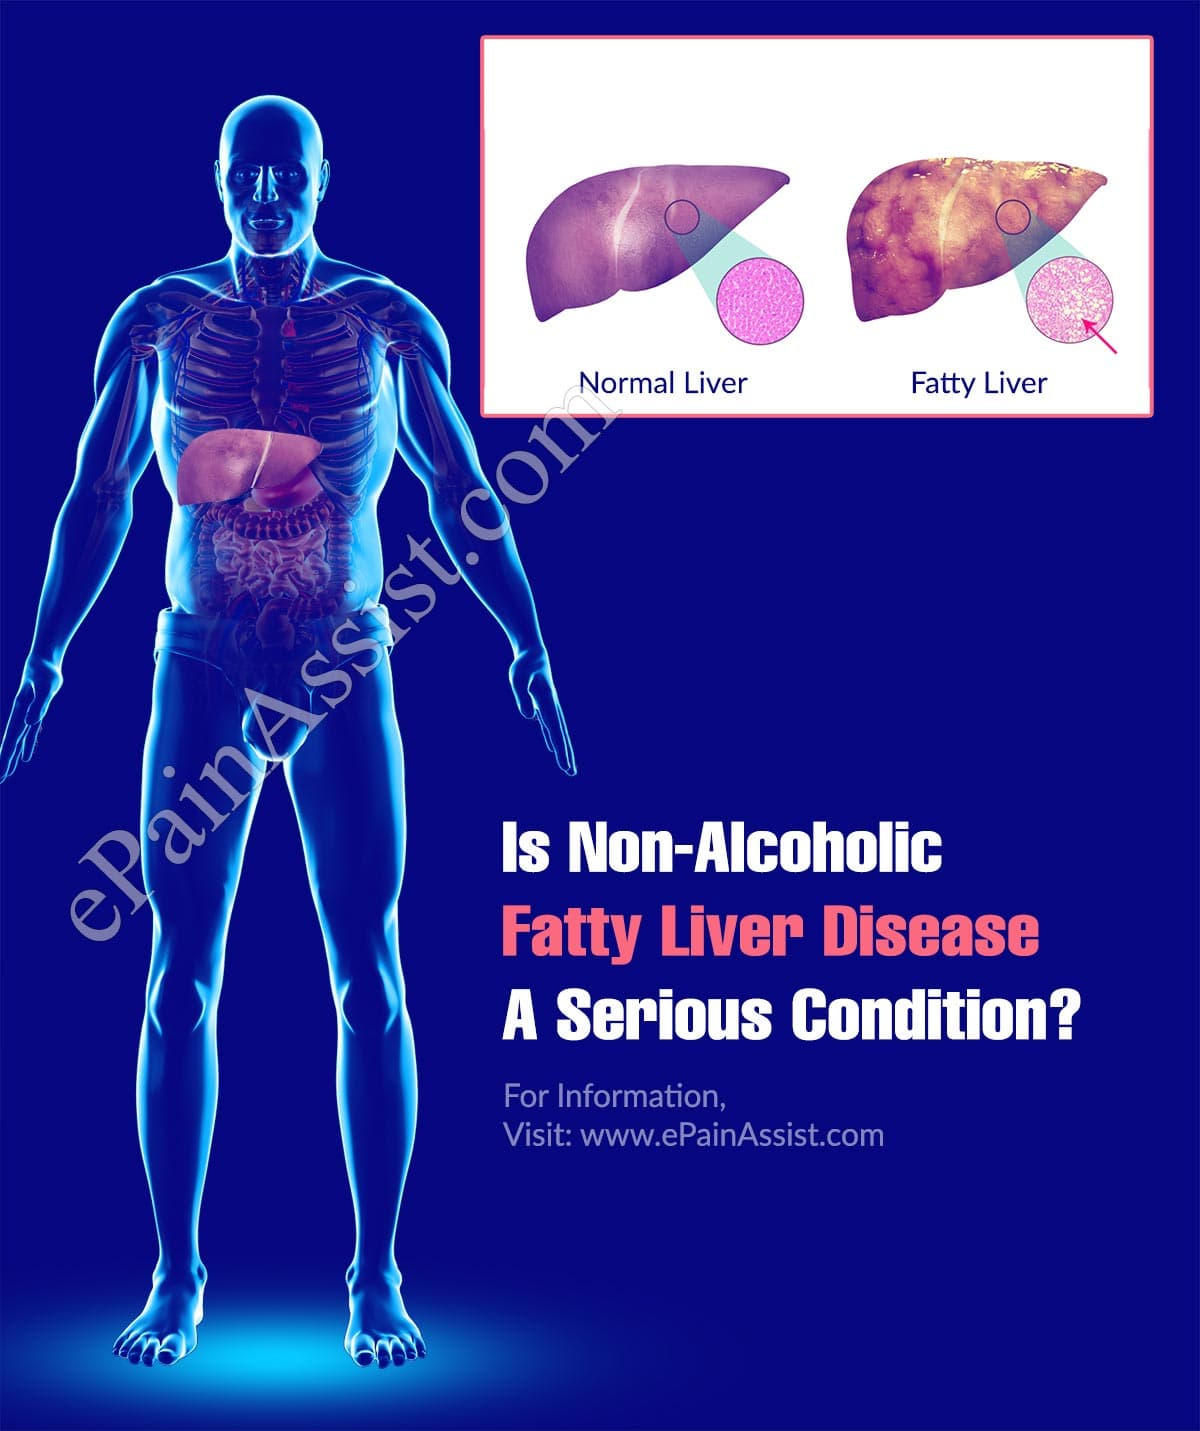 Is Non-Alcoholic Fatty Liver Disease A Serious Condition?